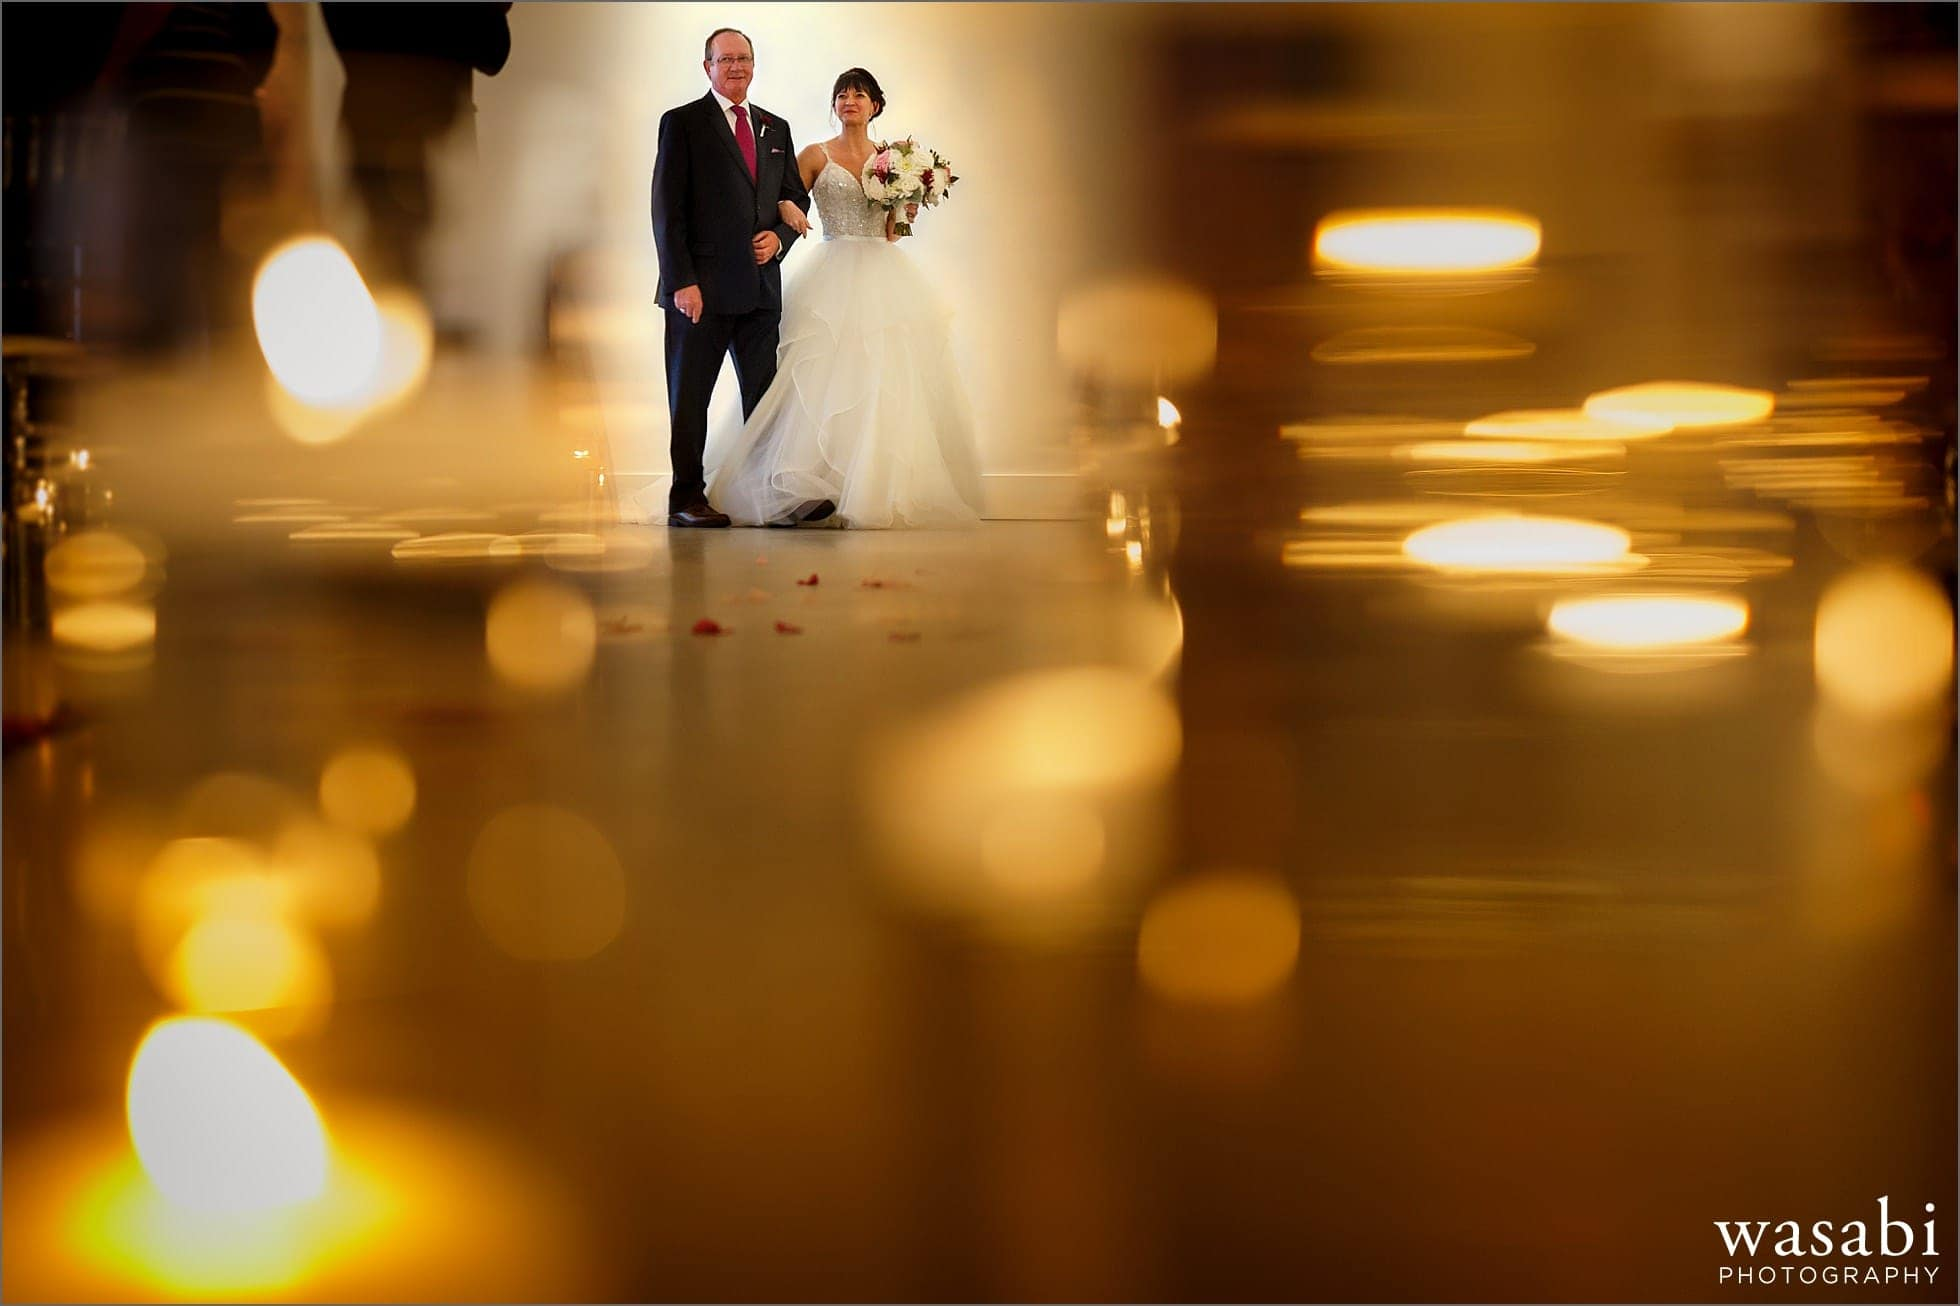 bride walks down the aisle with her father during wedding ceremony at Room 1520 in Chicago